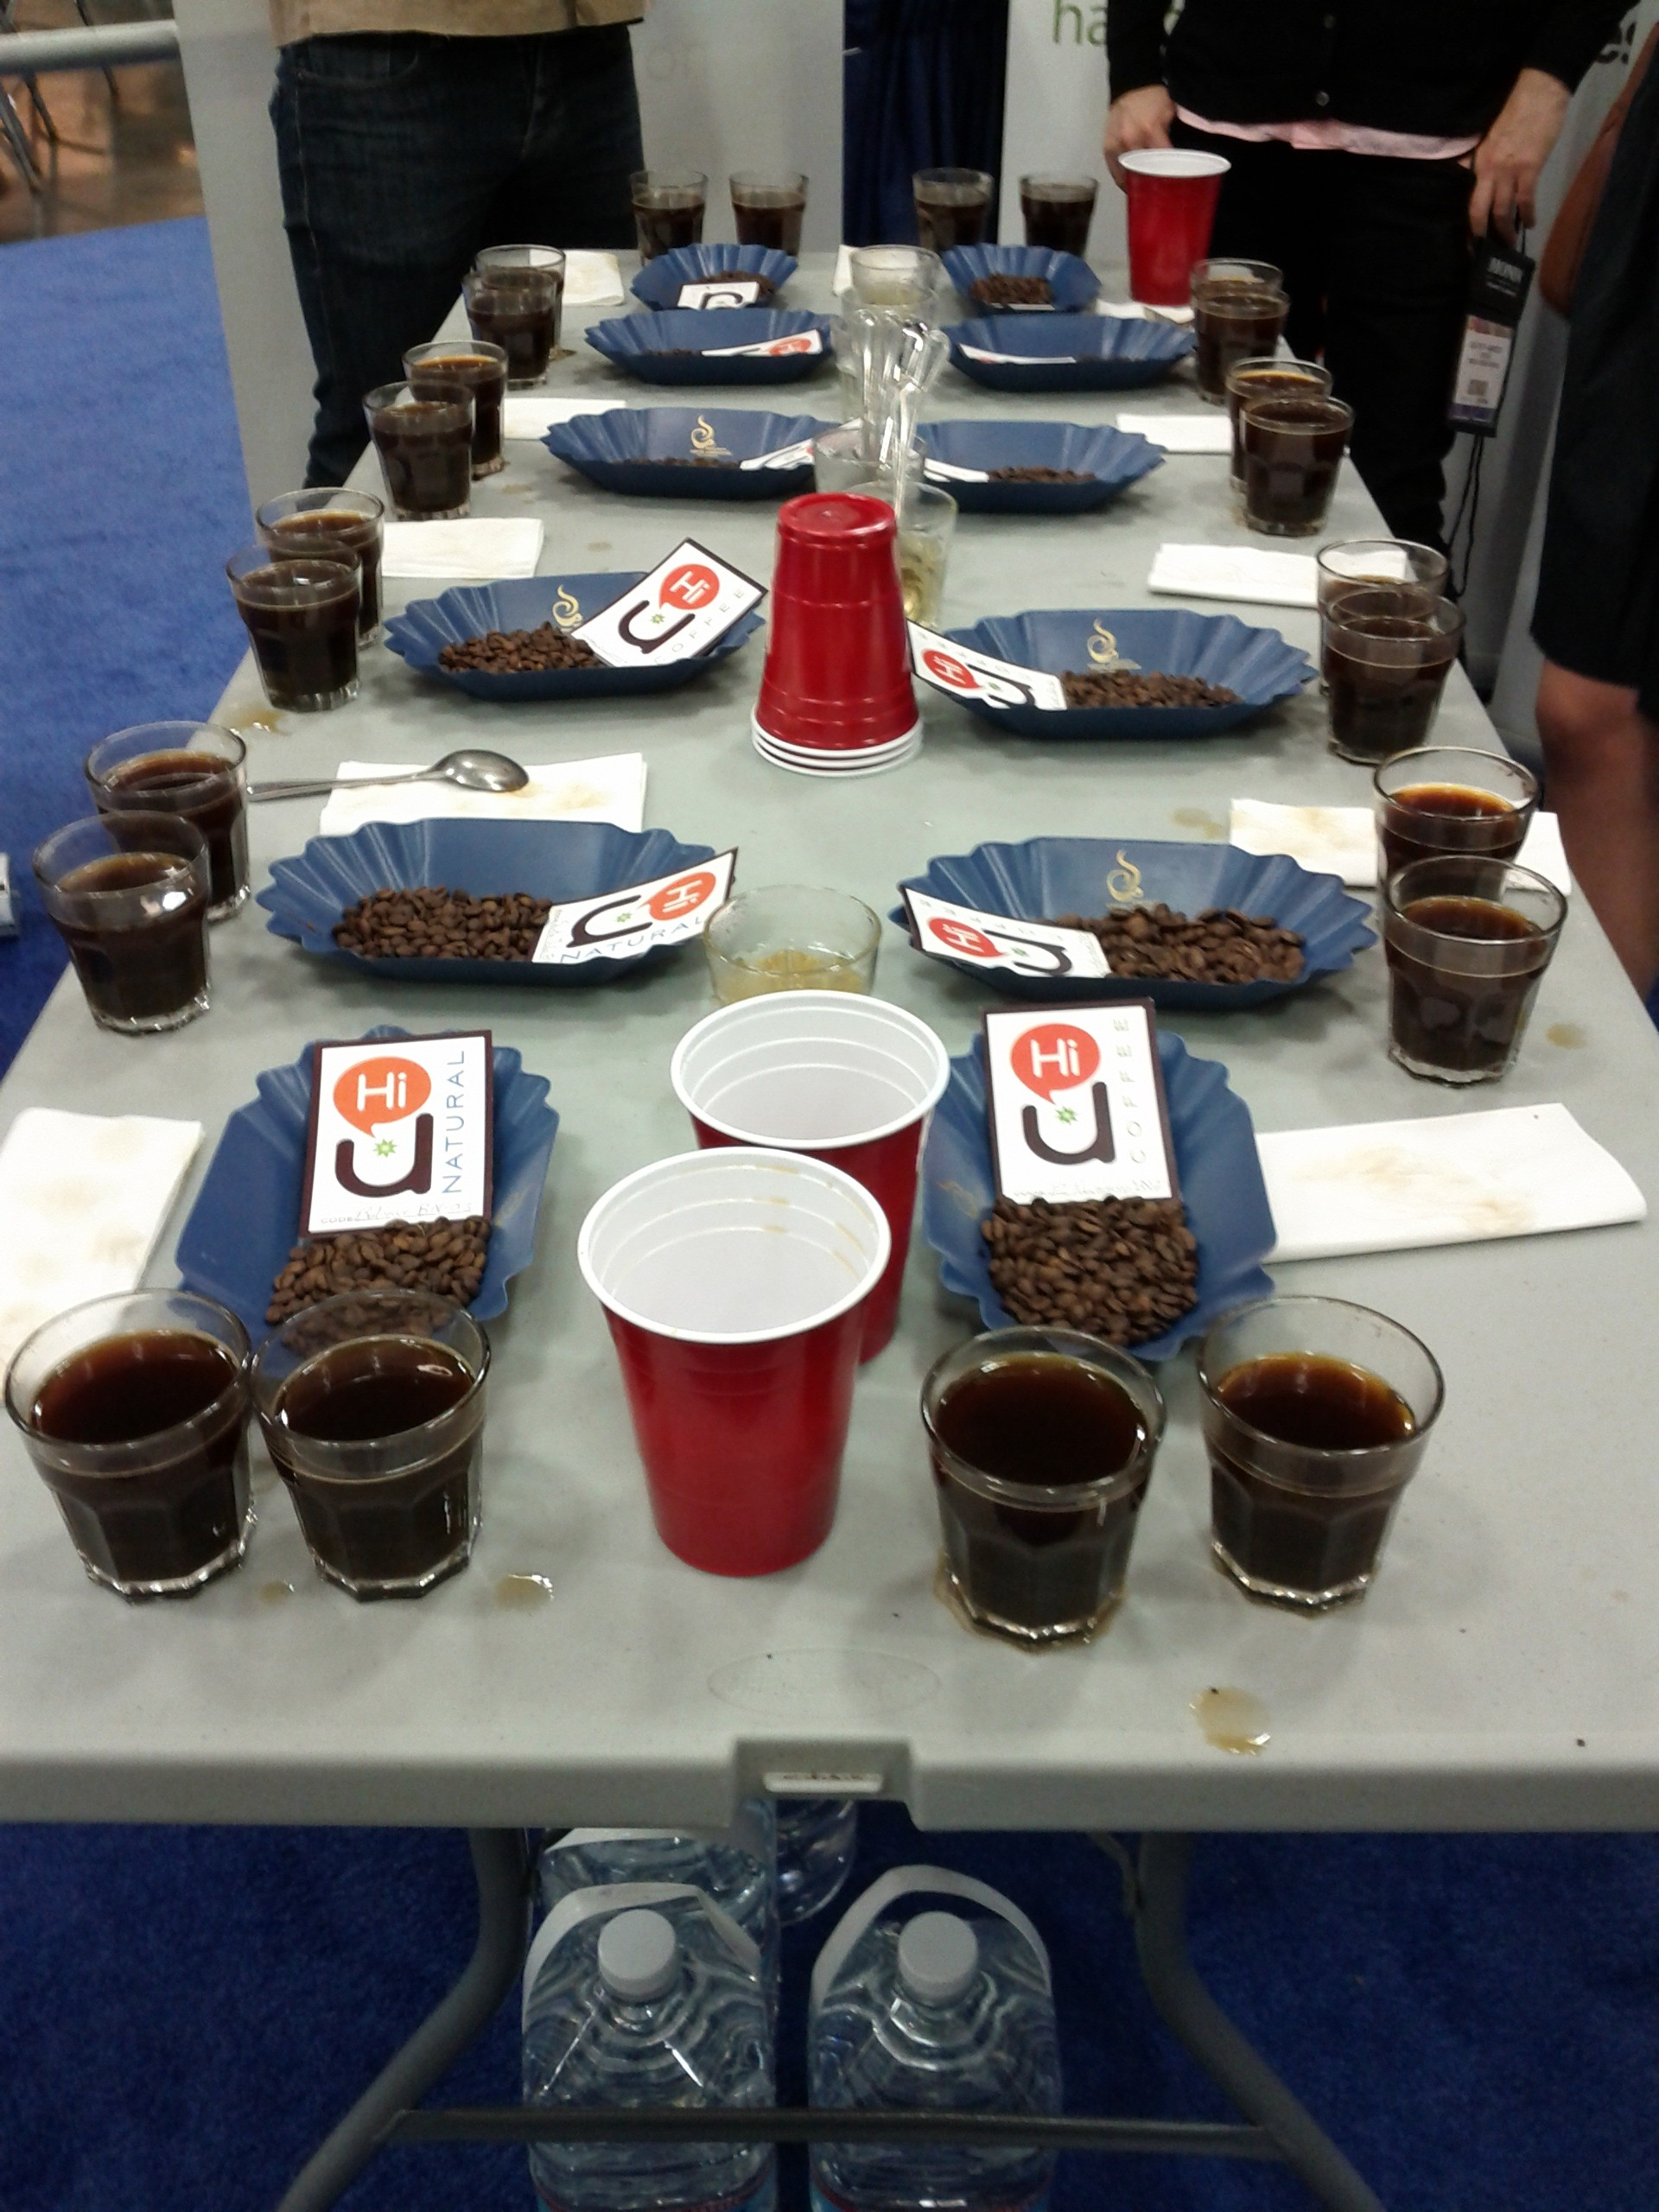 Cupping with HiU